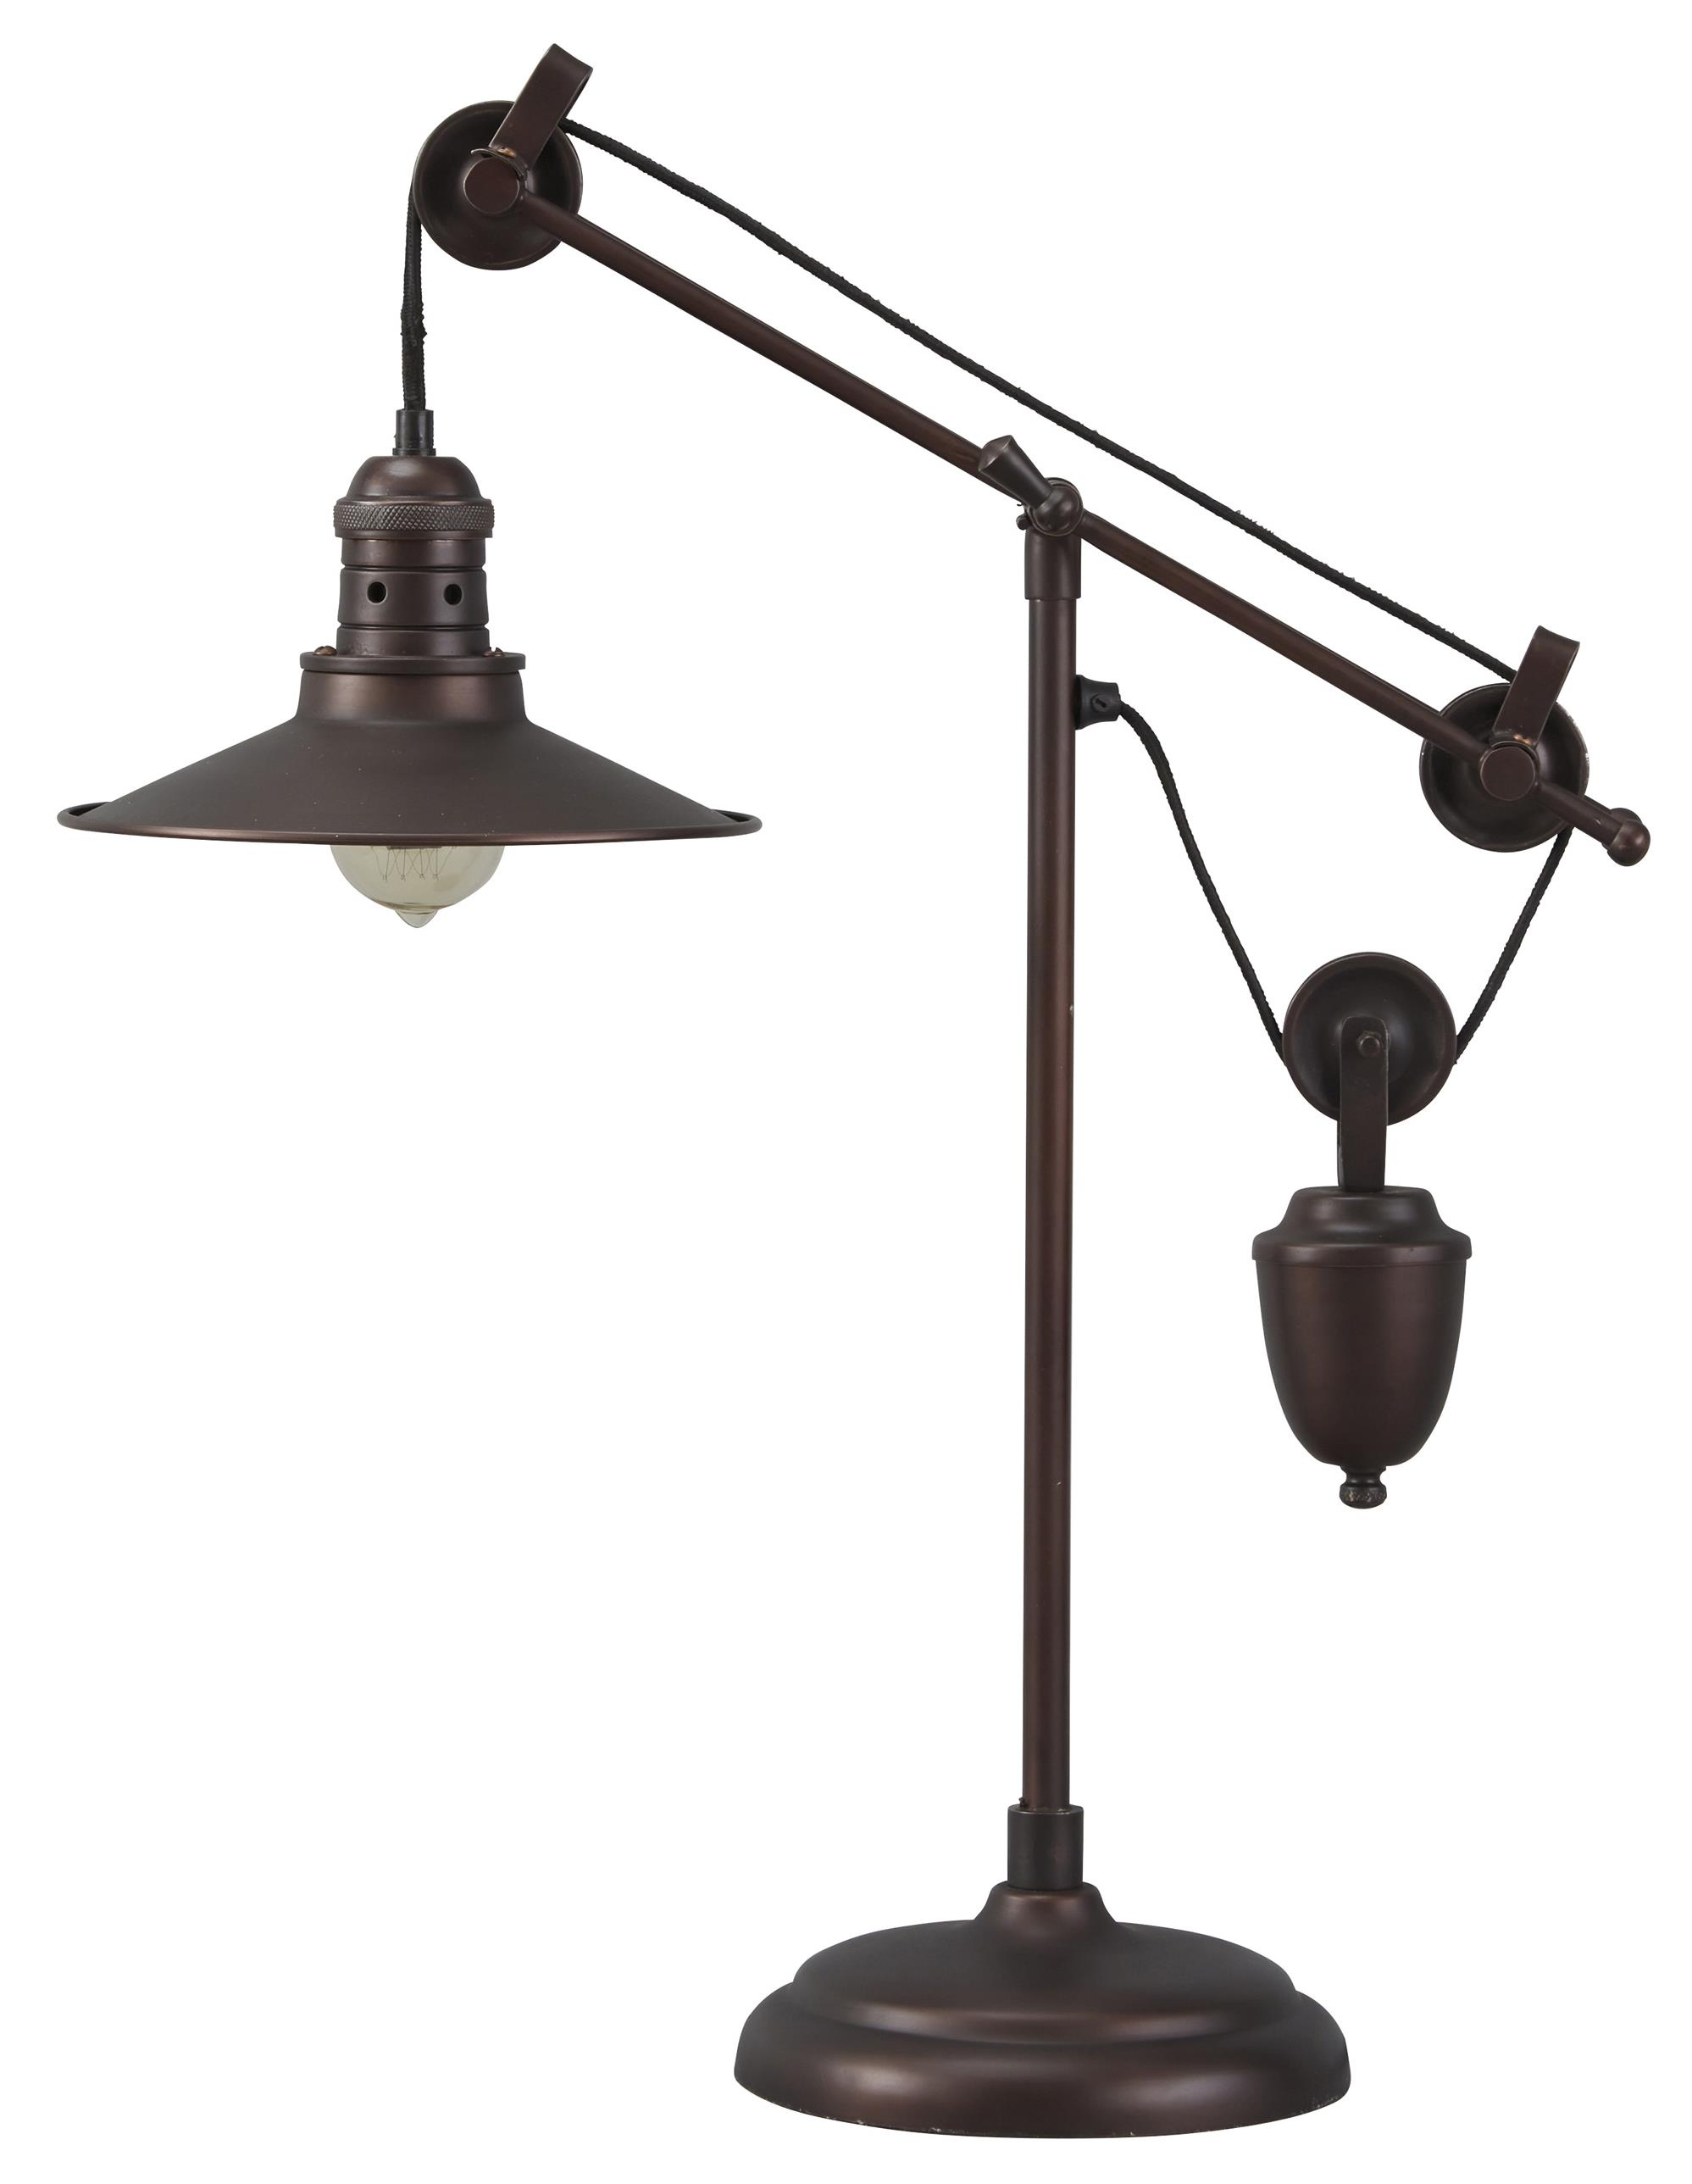 Signature Design by Ashley Lamps - Vintage Style Kylen Metal Desk Lamp - Item Number: L734152